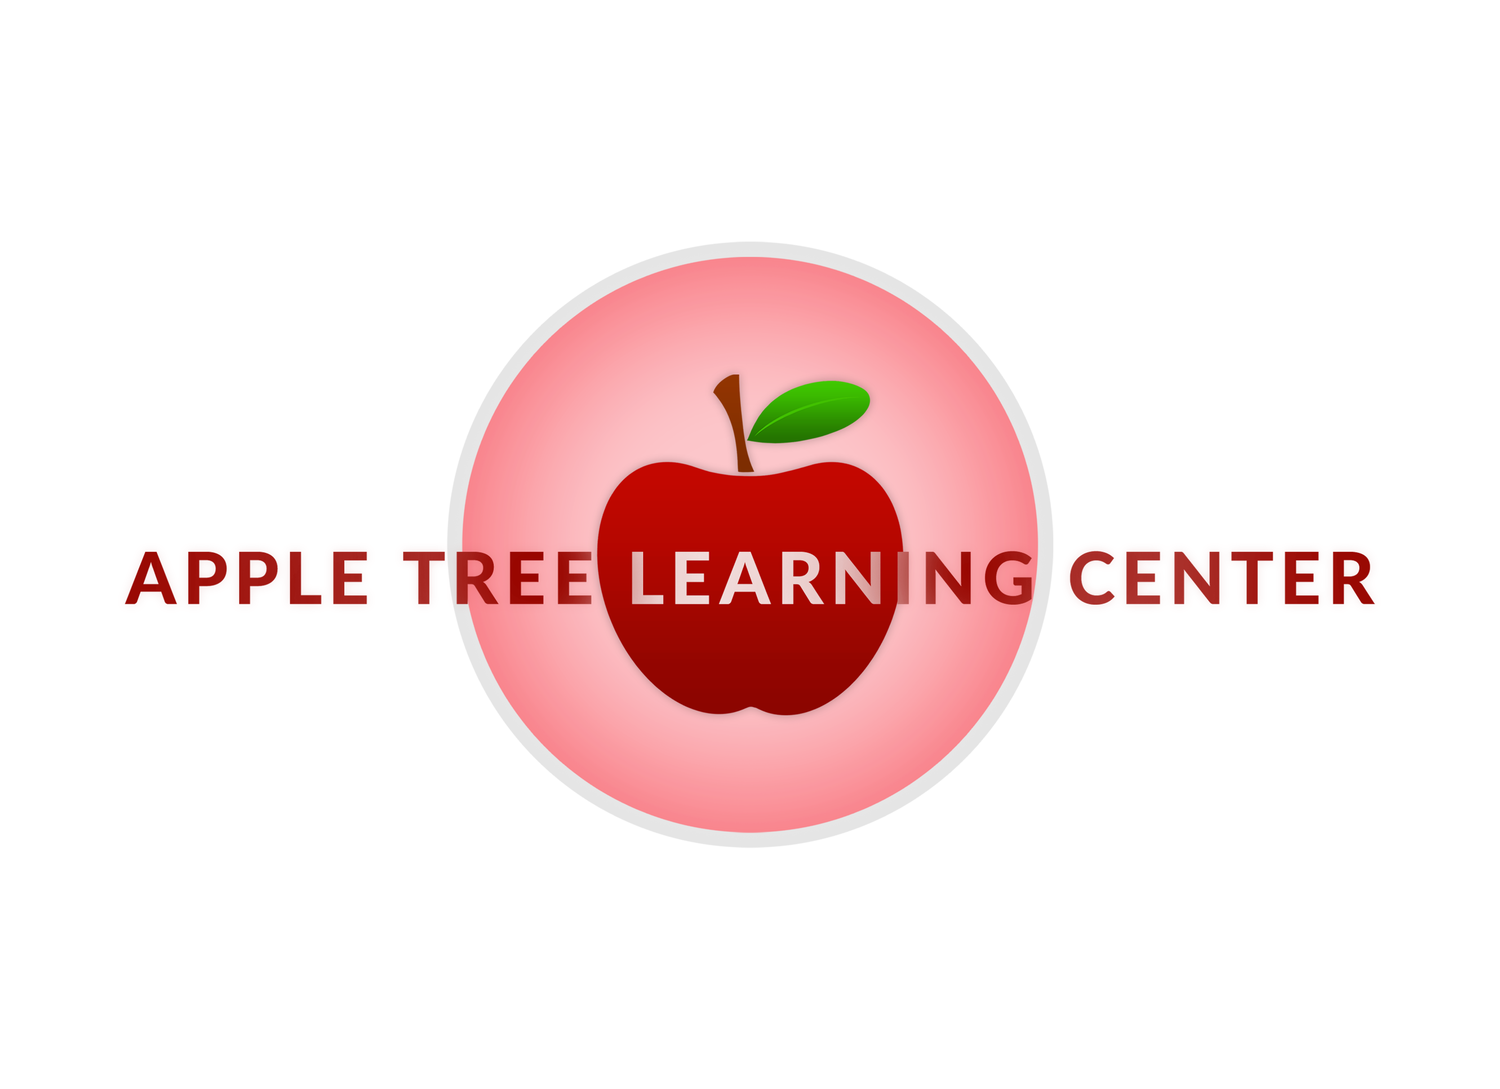 Apple Tree Learning Center